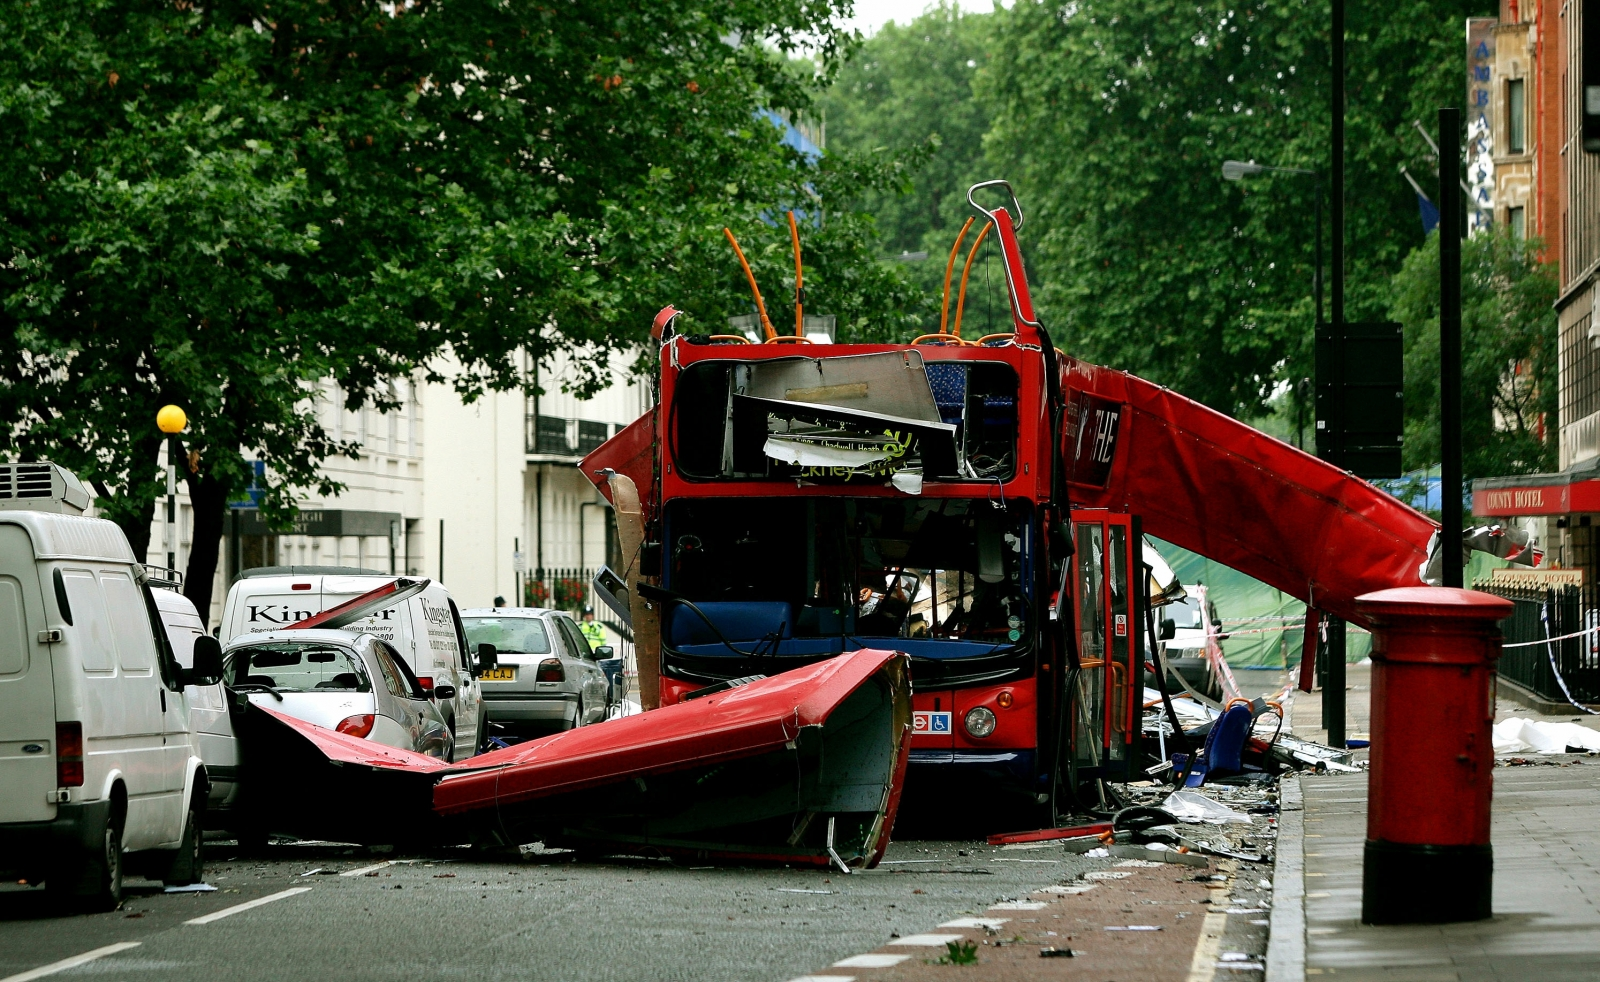 7/7 London bombings anniversary